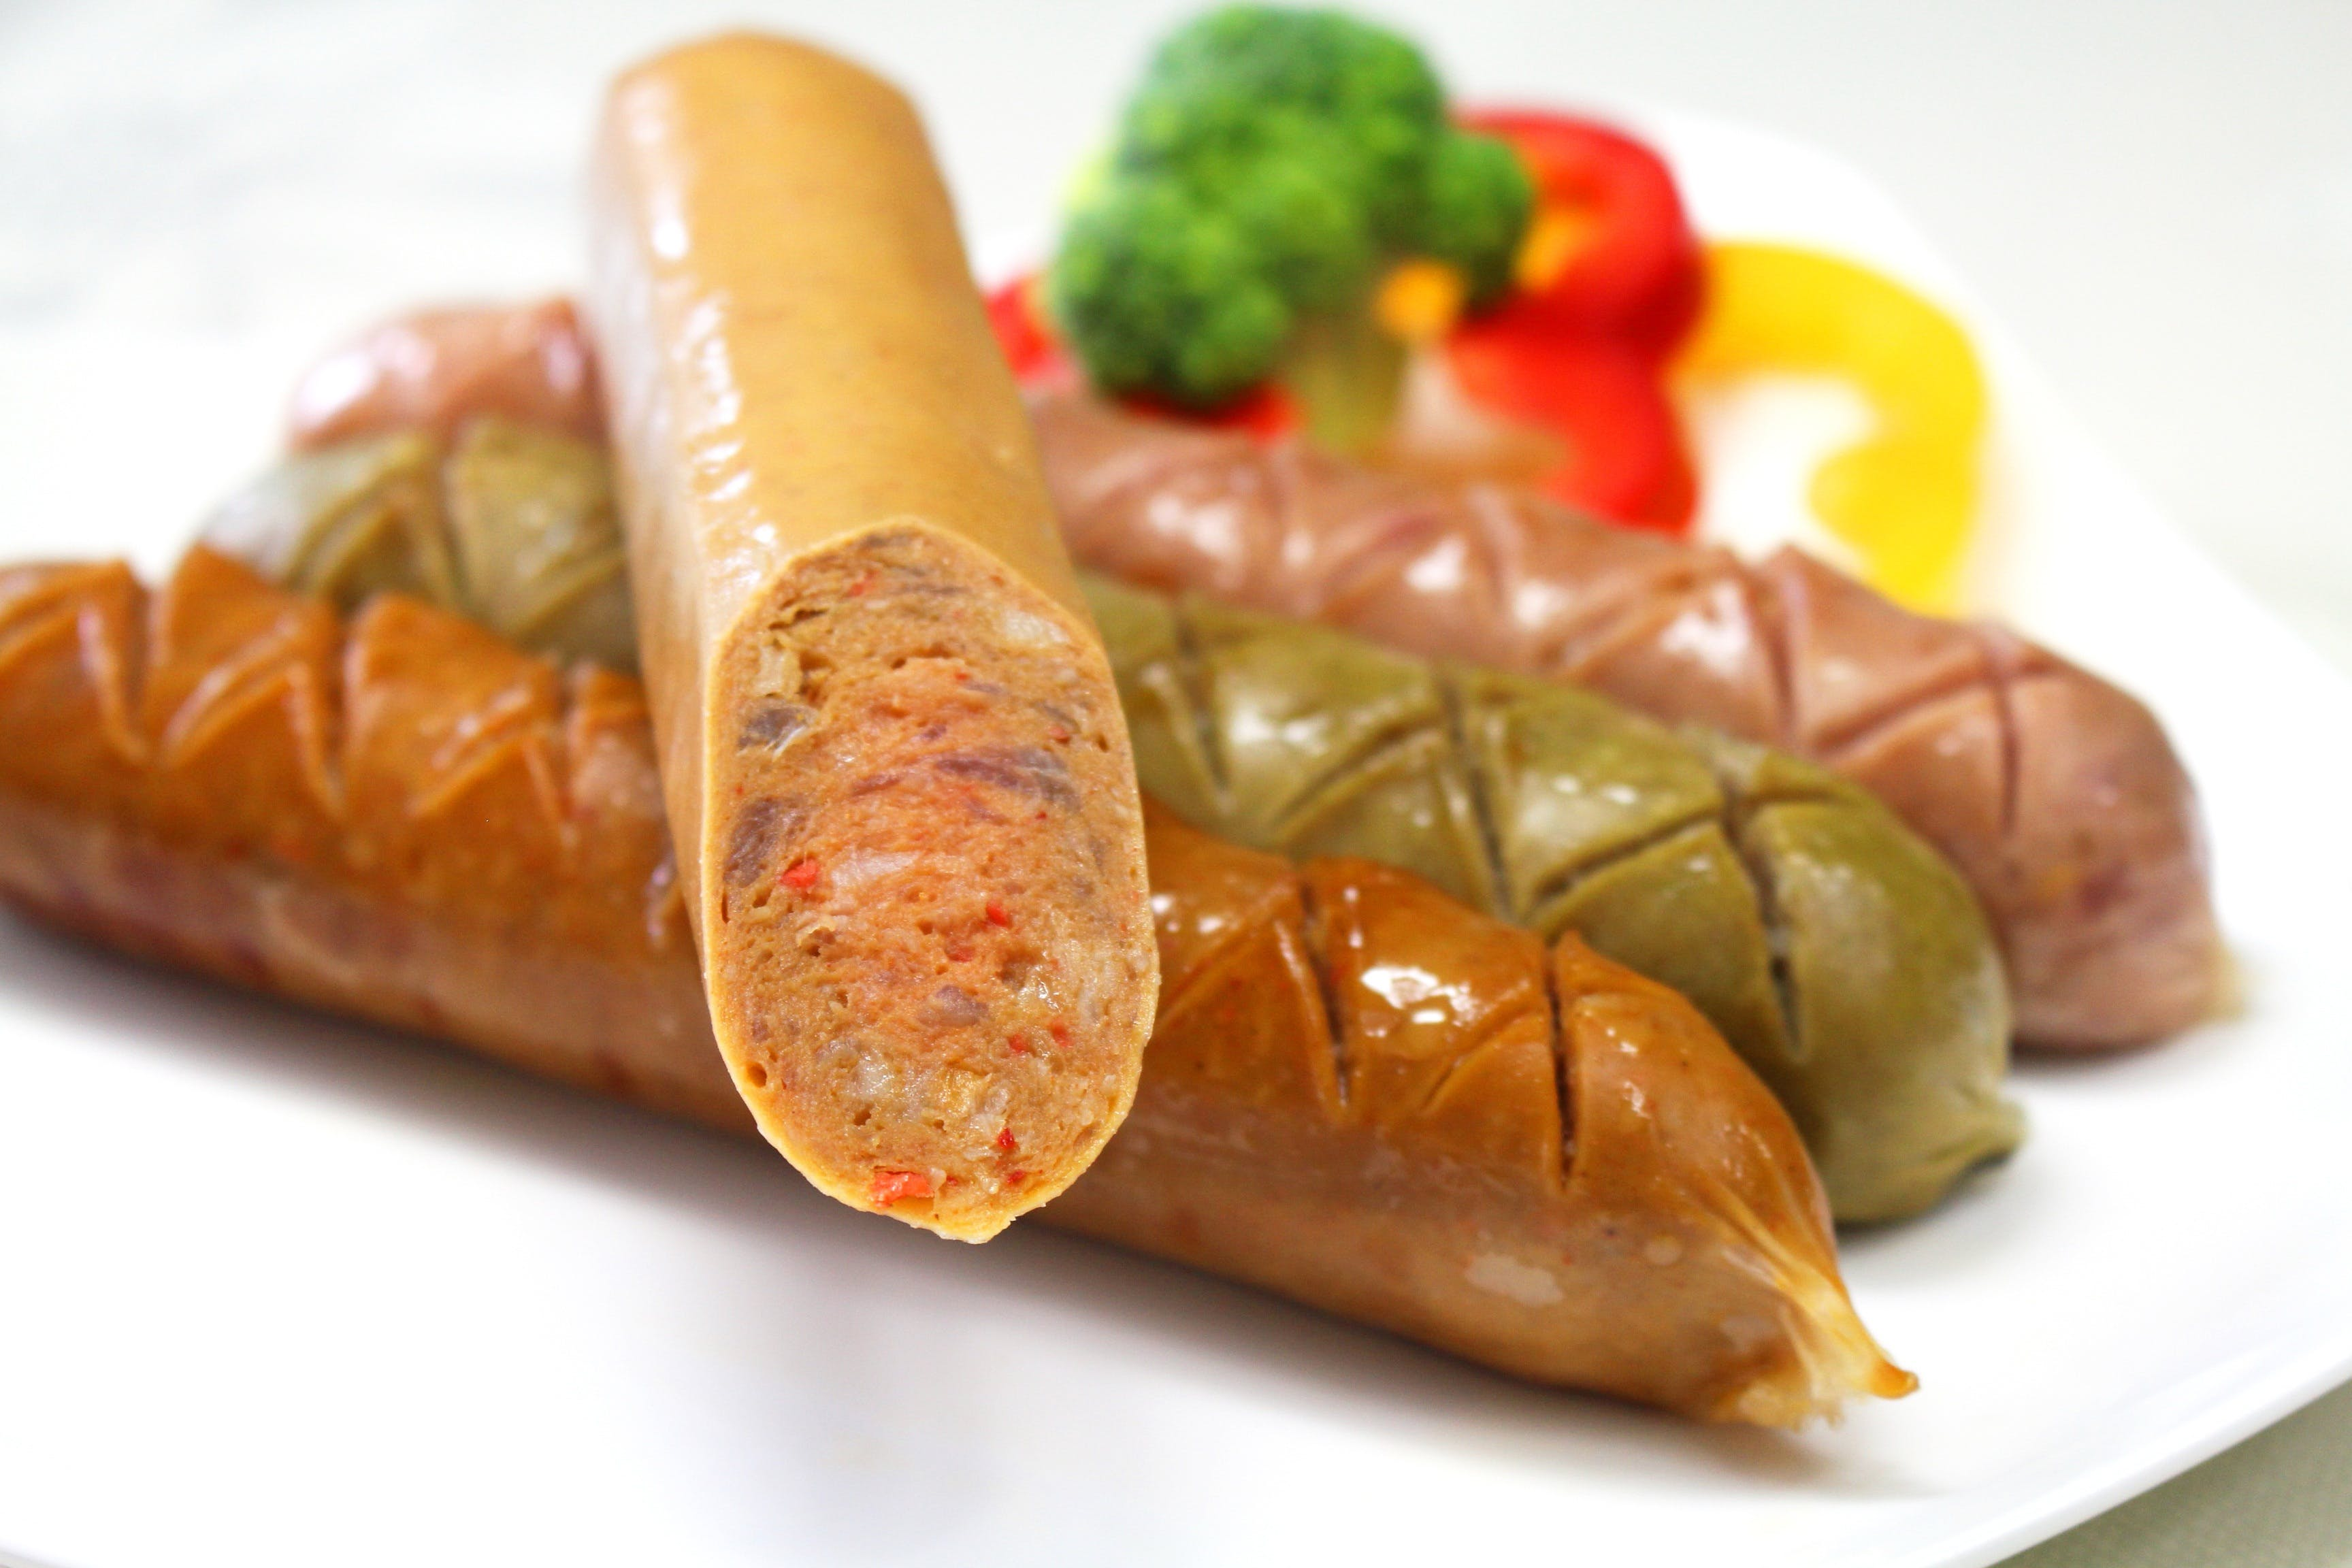 Sausage on White Plate